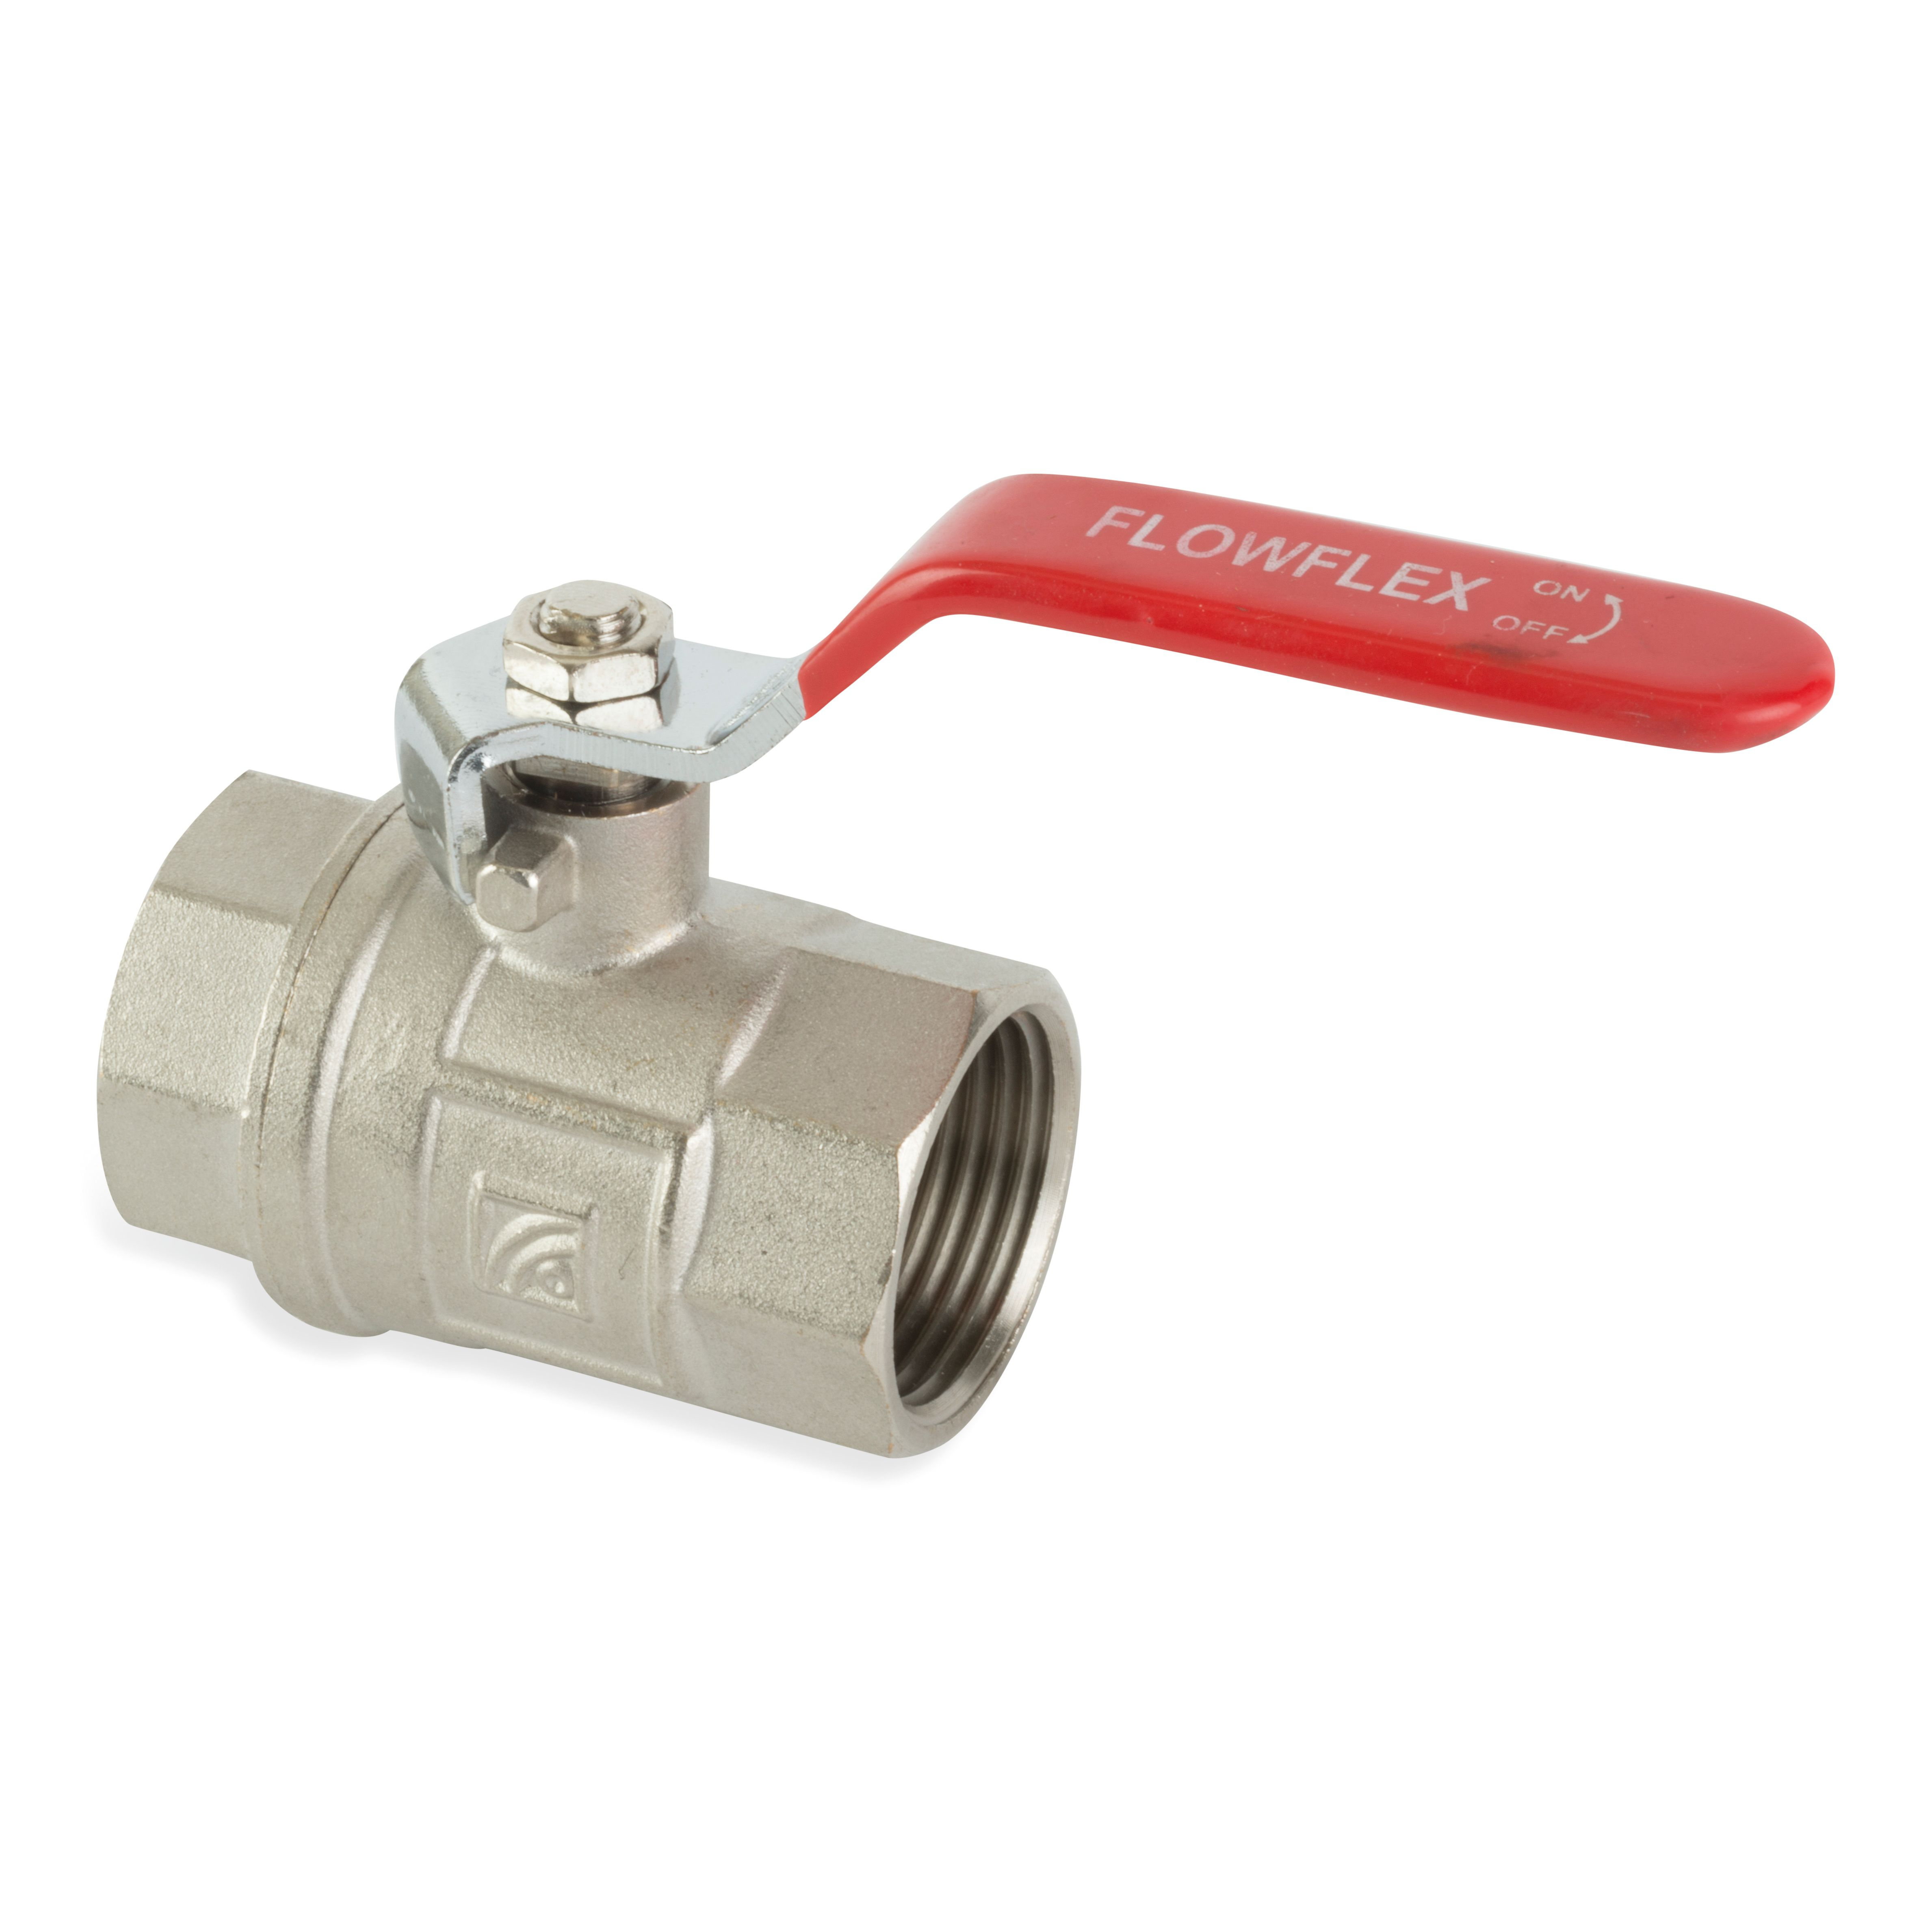 Ball Valves with Threaded Connections